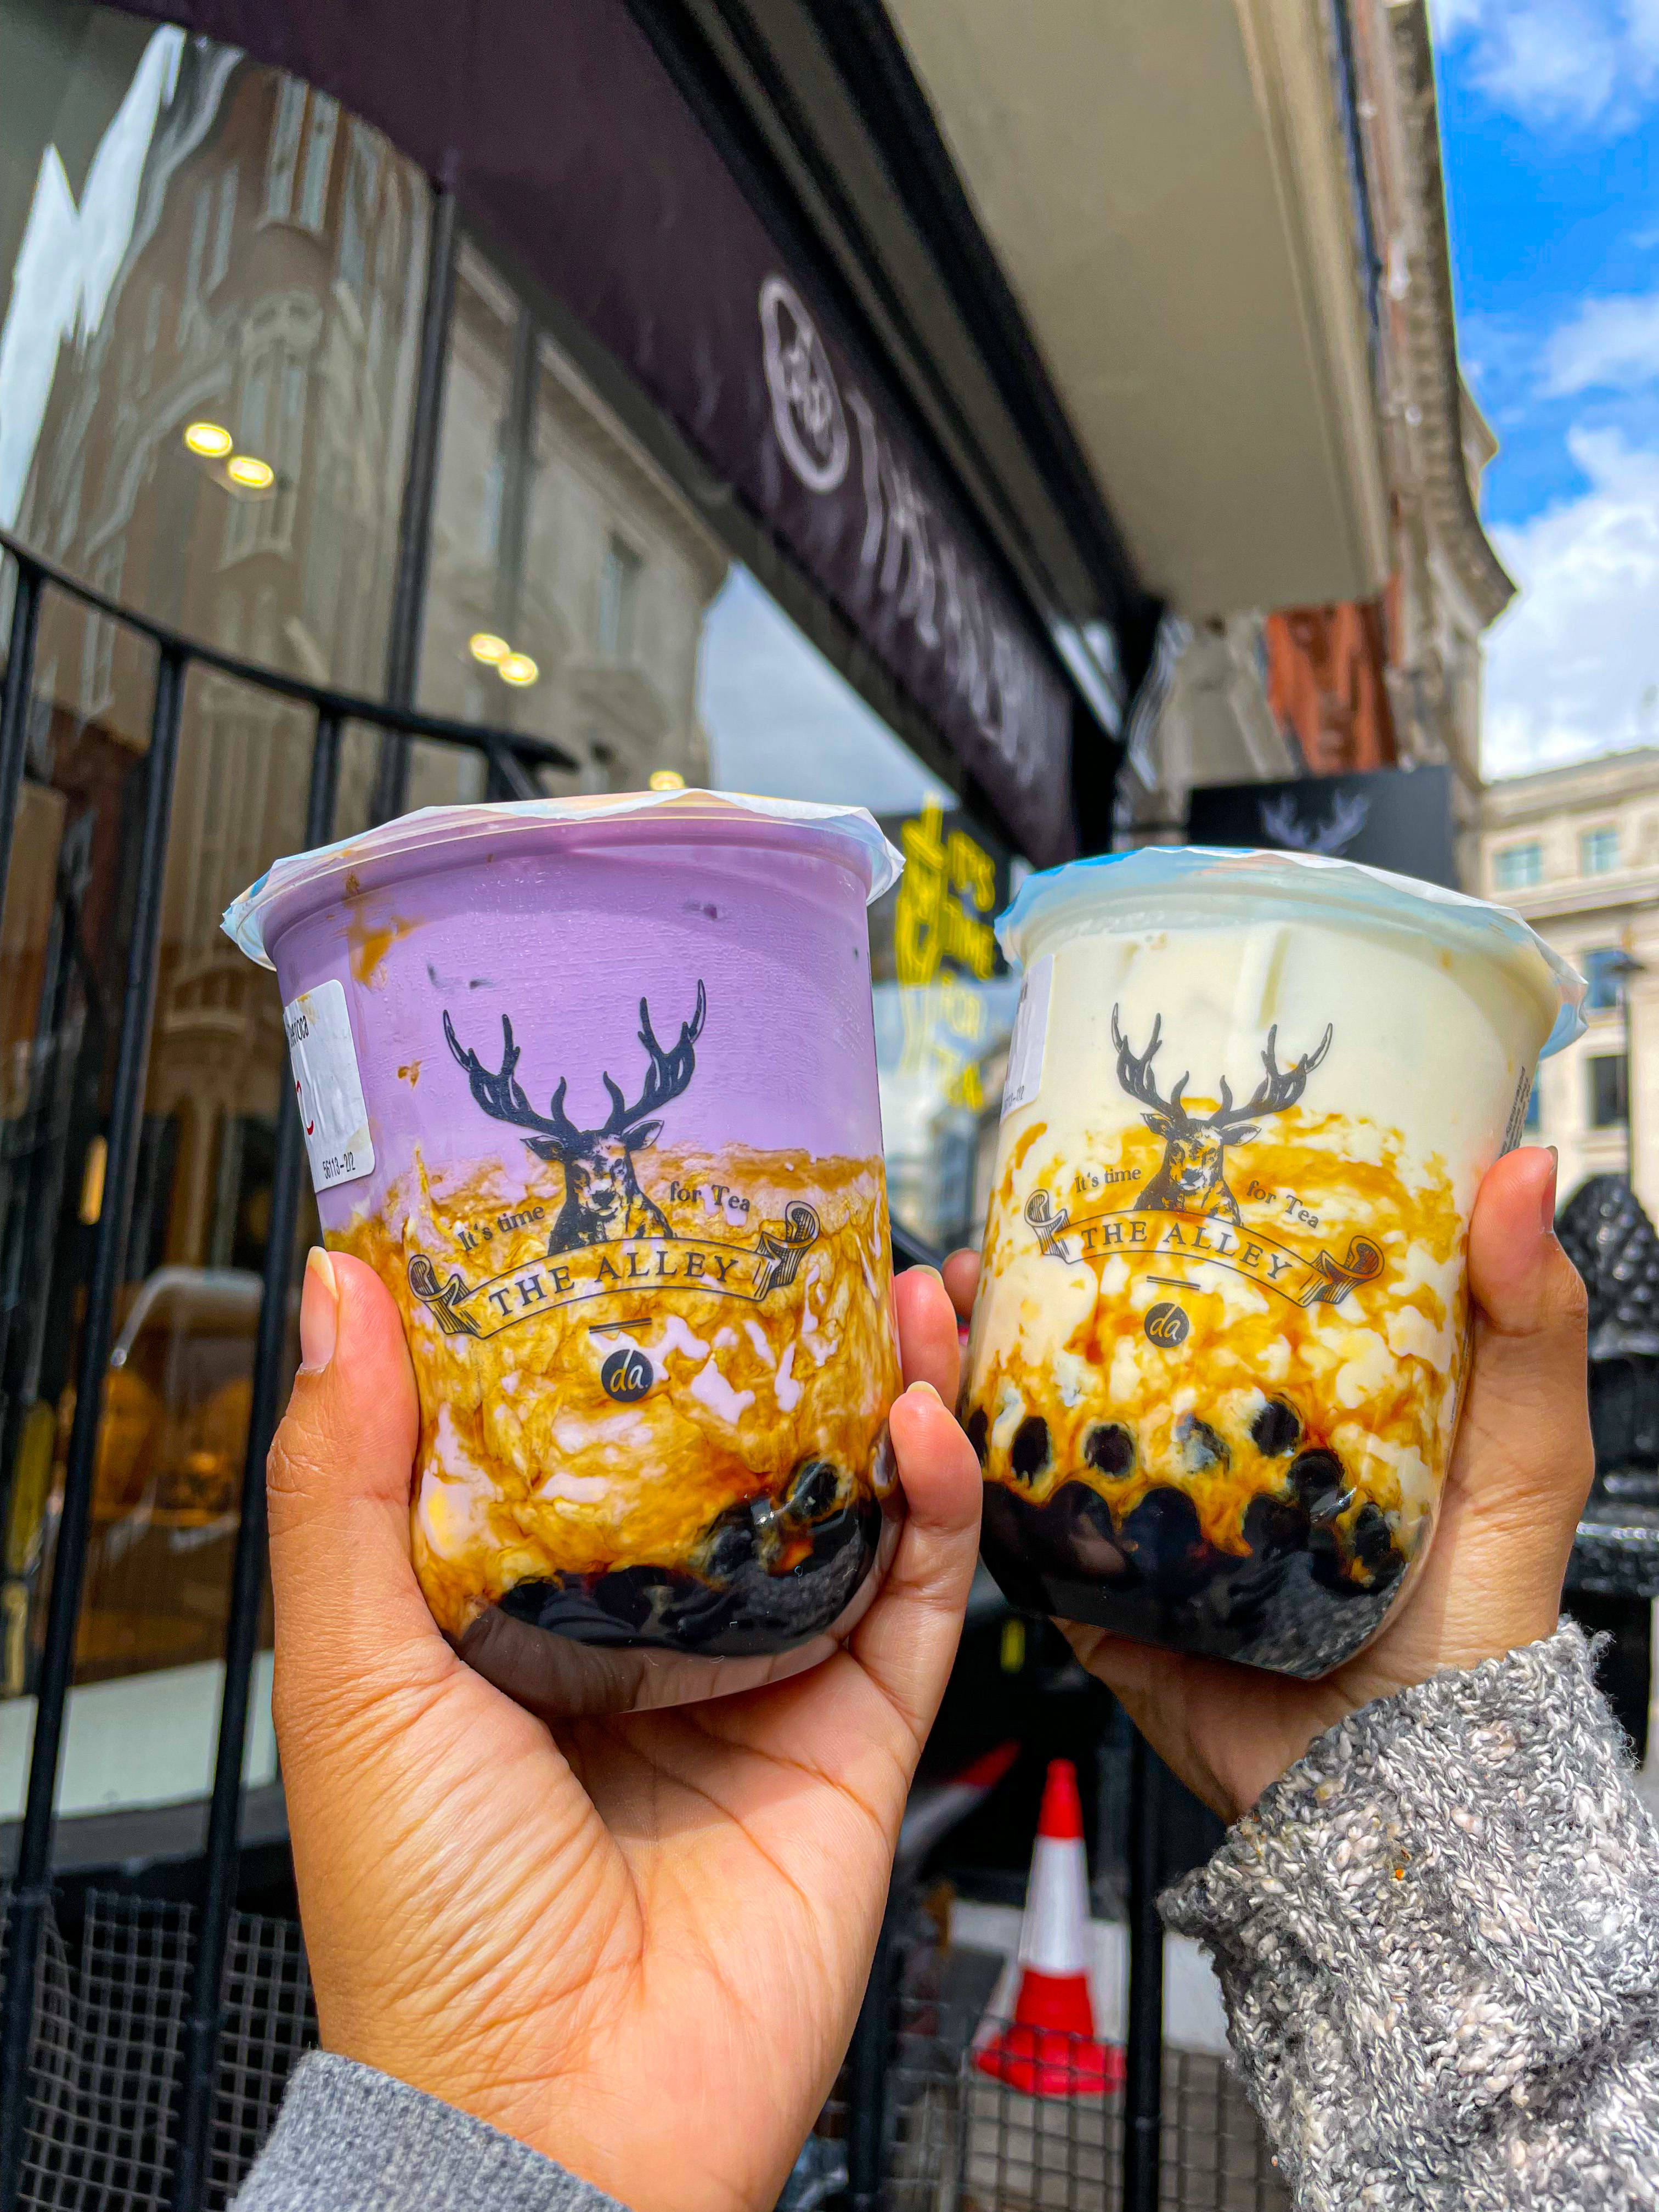 TheAlley-Review-FoodwithMae 5